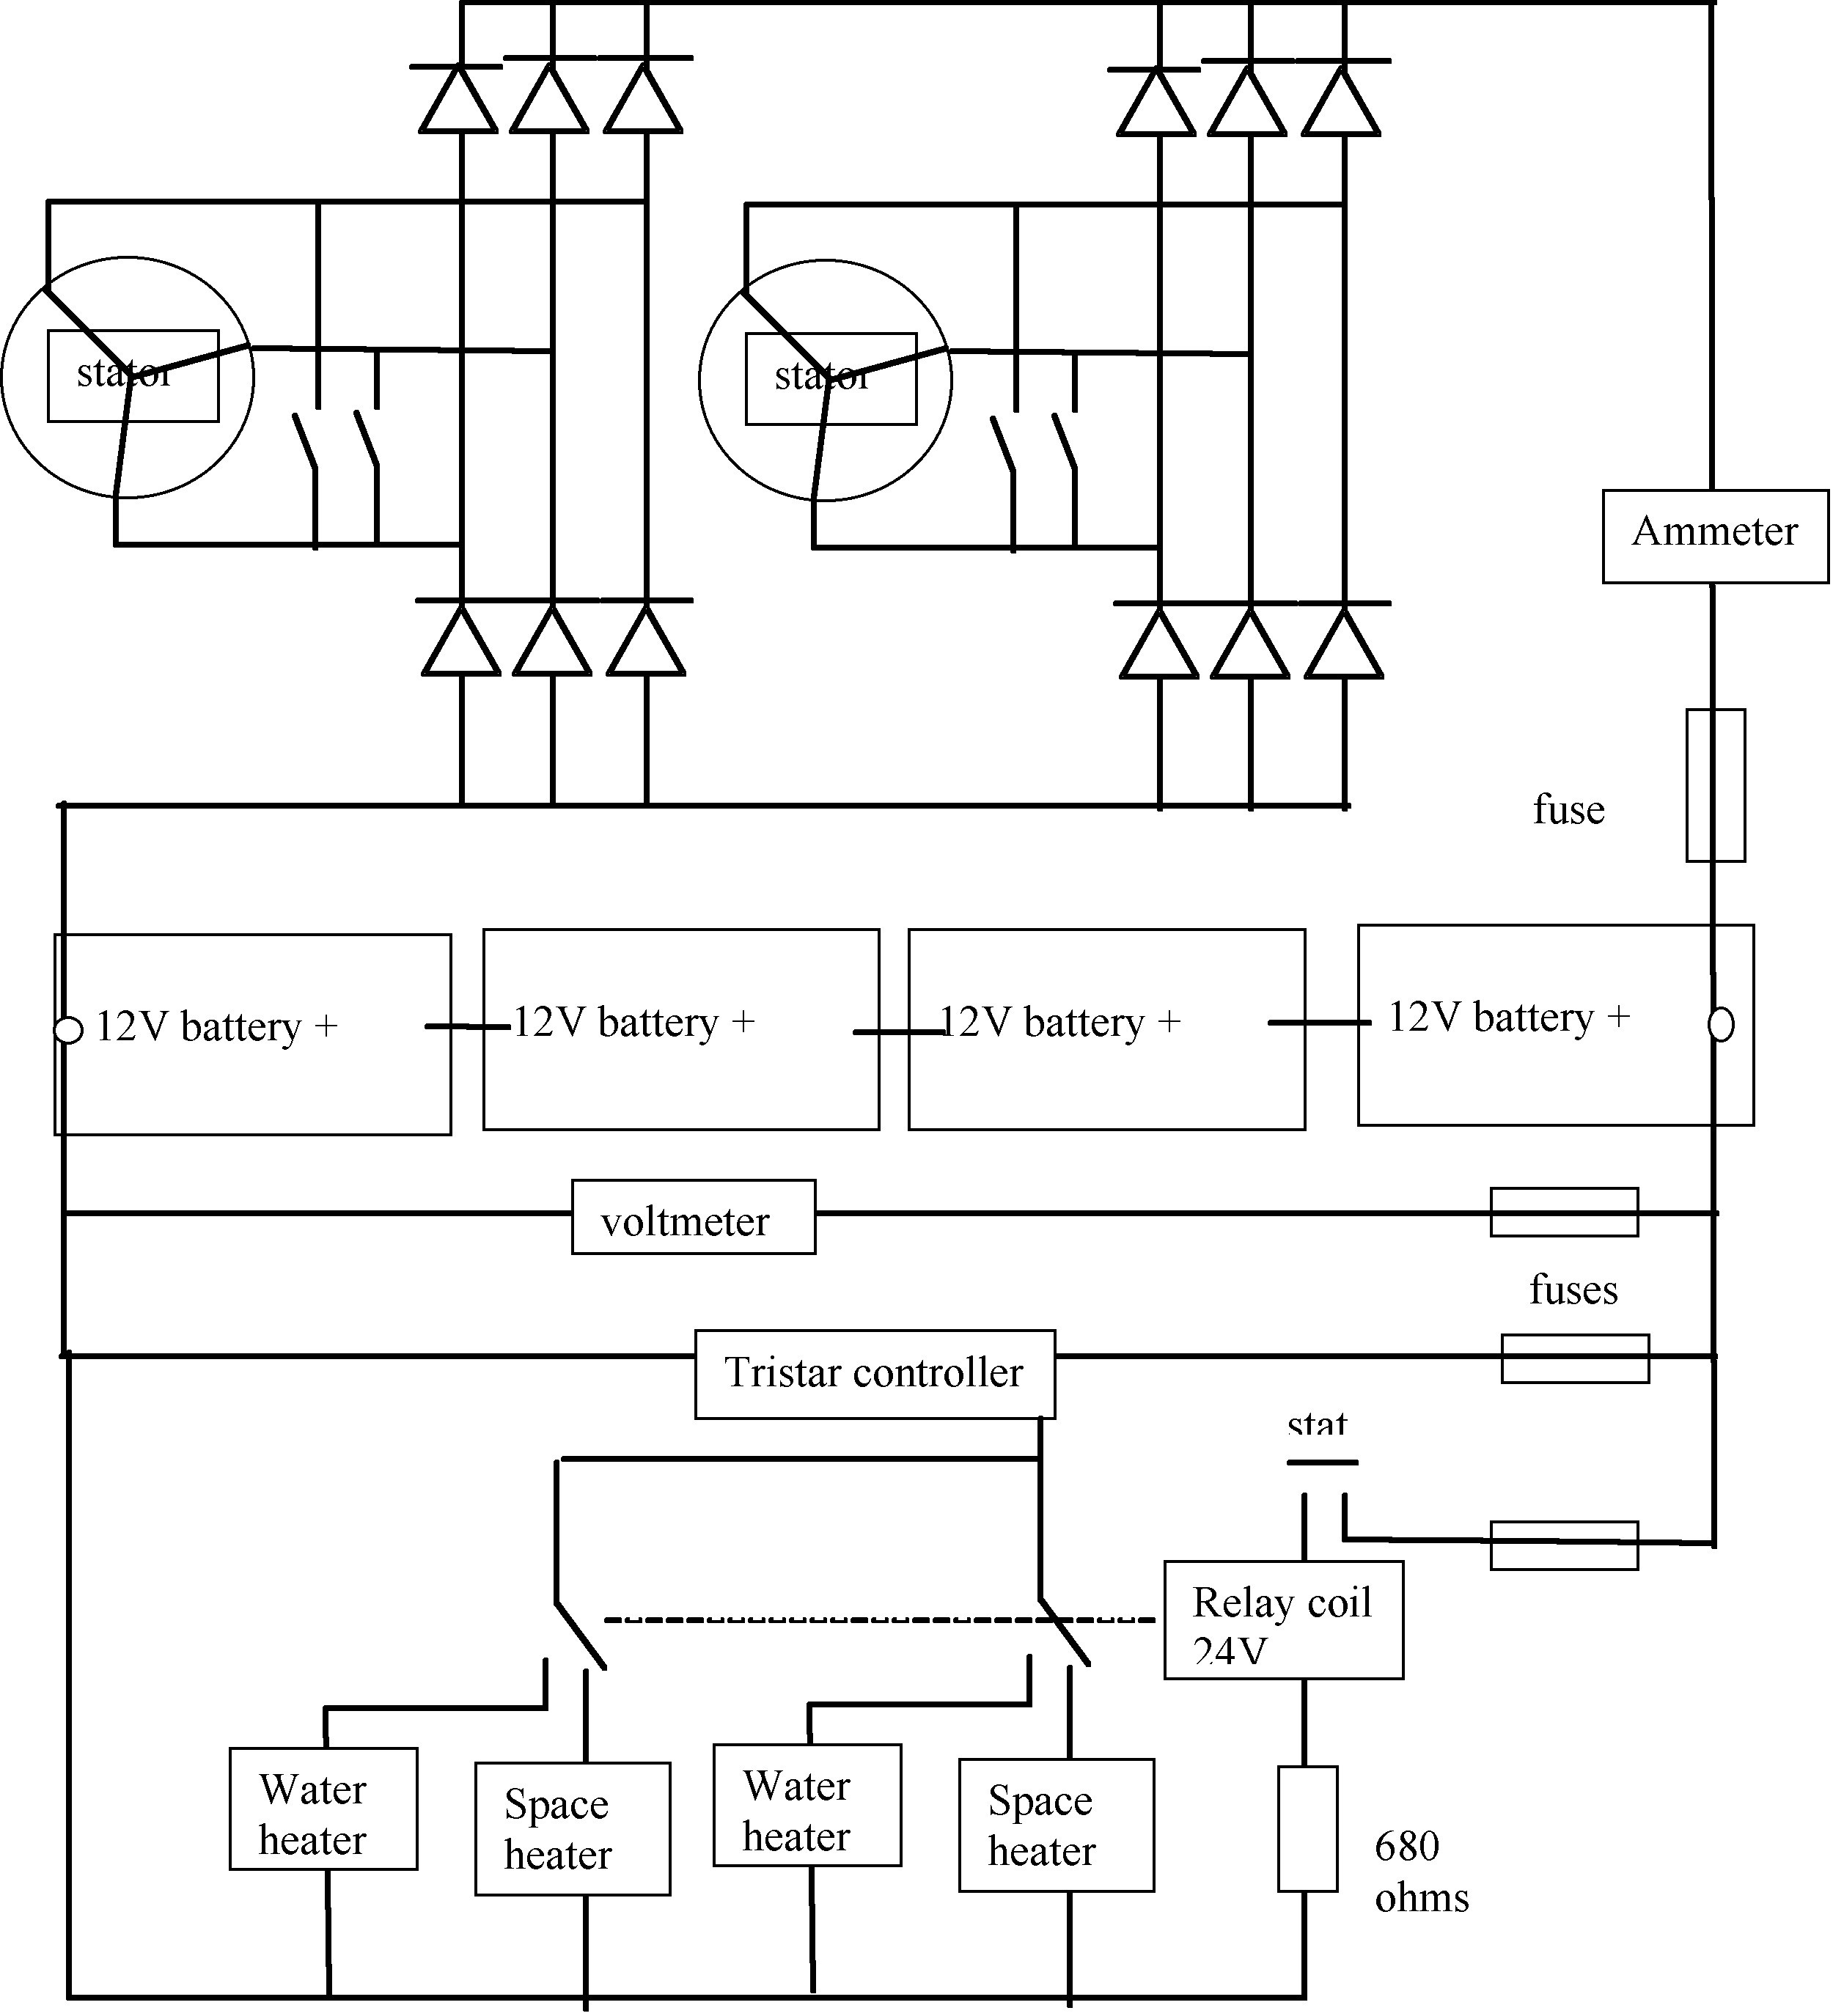 Atwood Furnace Troubleshooting Wiring Diagrams Atwood Hydro Flame Furnace Parts L Bc C D E further Atwood Water Heater Troubleshooting For Atwood Water Heater Parts Diagram likewise Atwood Furnace Schematic together with Wpevstartrunwires likewise Atwood Hydro Flame Rv Heater Furnace Motor Wall Atwood Hydro Flame Furnace Parts L A E Dff F. on atwood rv water heater wiring diagrams